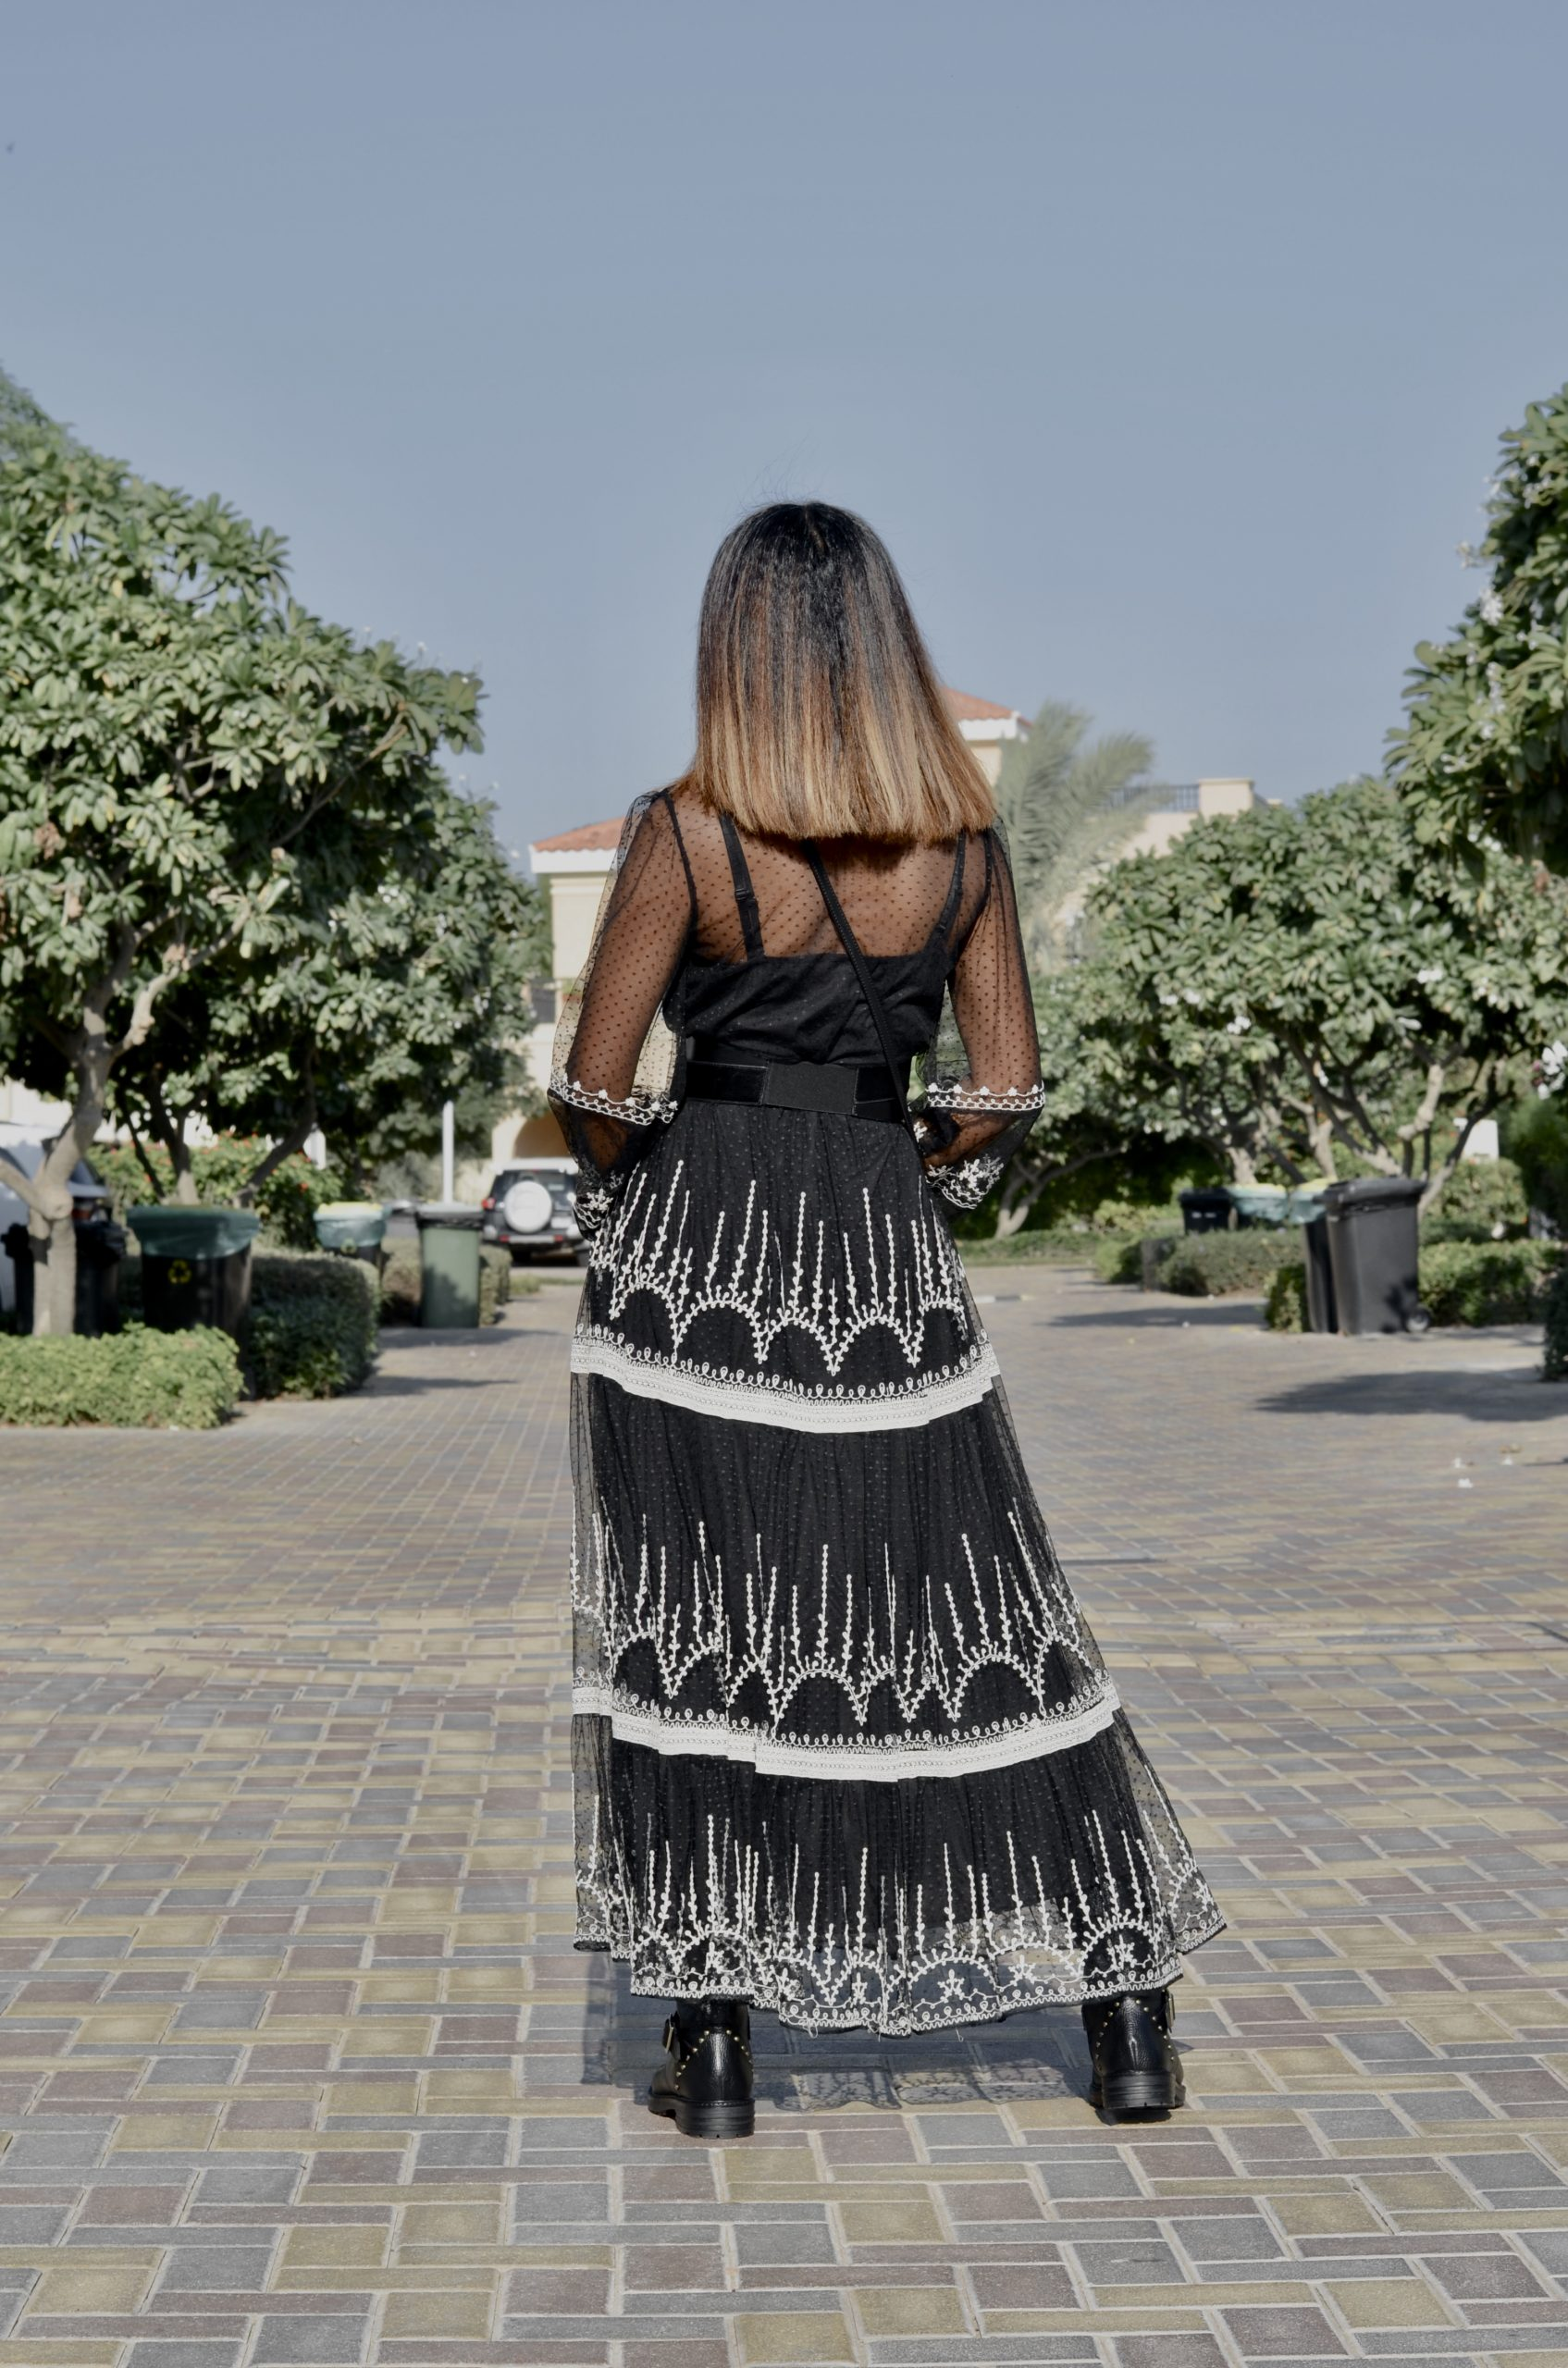 HOW TO STYLE A ZARA DRESS WITH DIOR VIBES